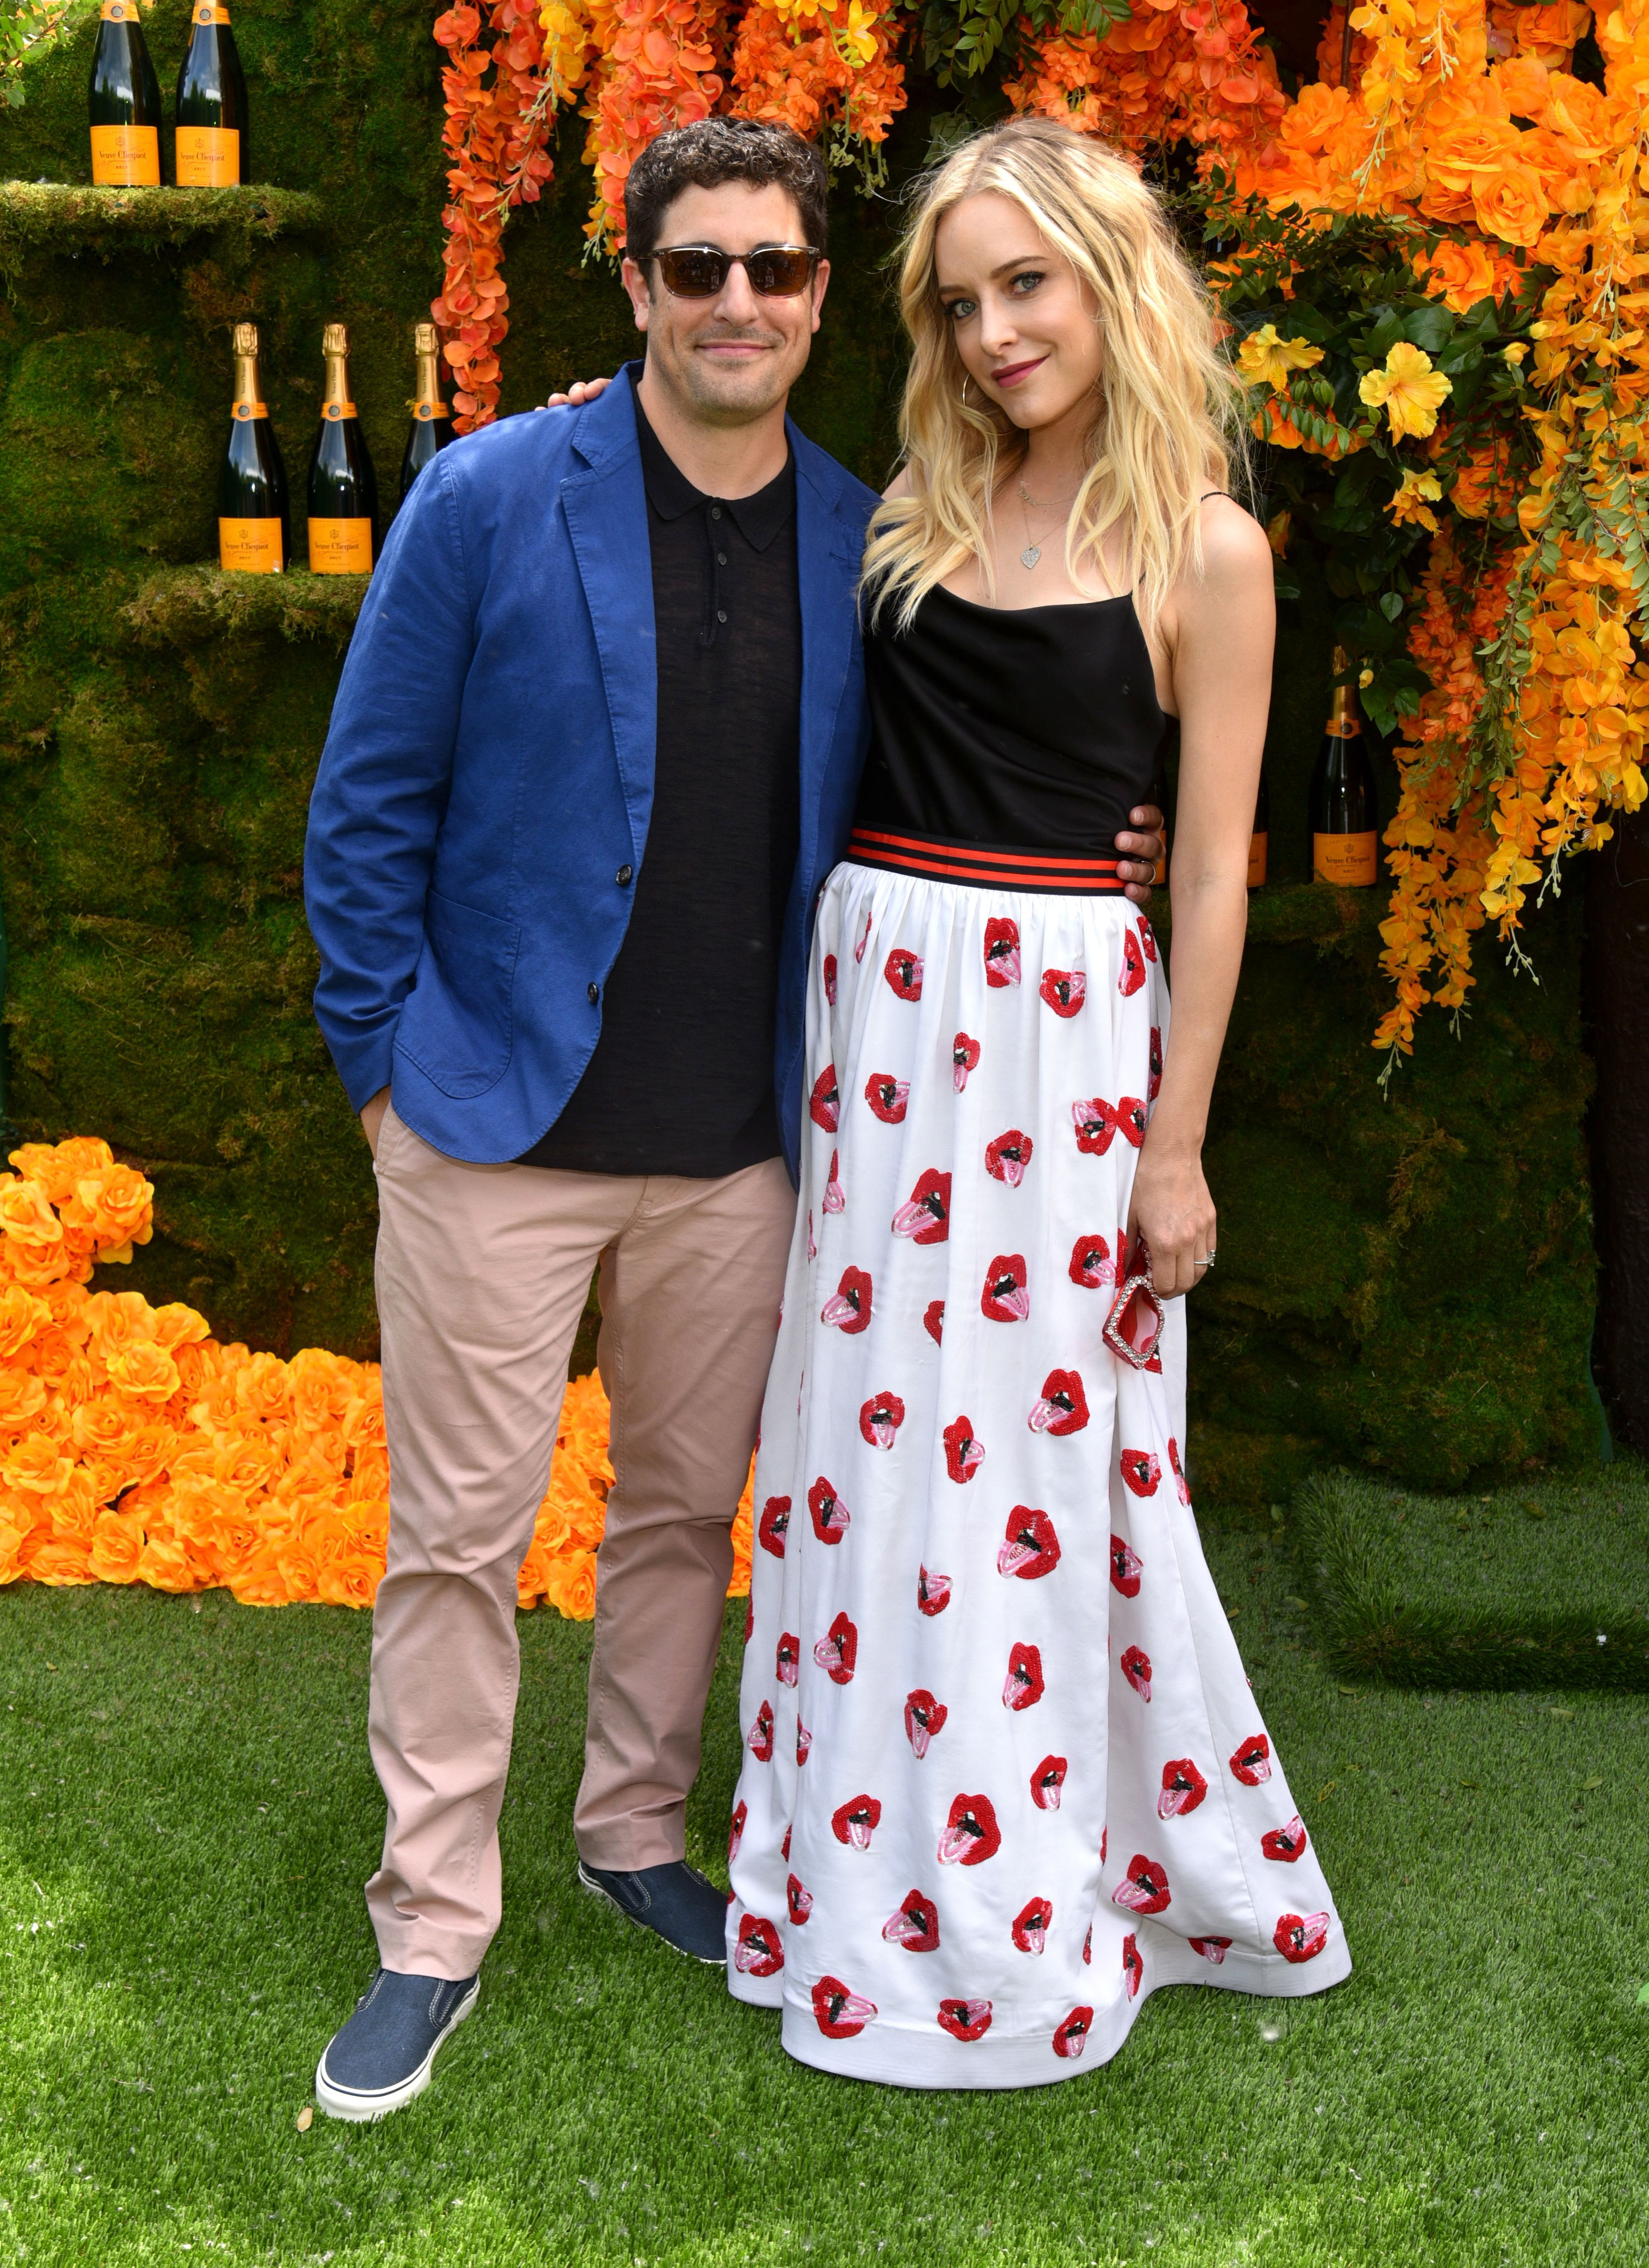 Jason Biggs and Jenny Mollen attend the Veuve Clicquot Polo Classic at Liberty State Park in New Jersey on June 2, 2018.